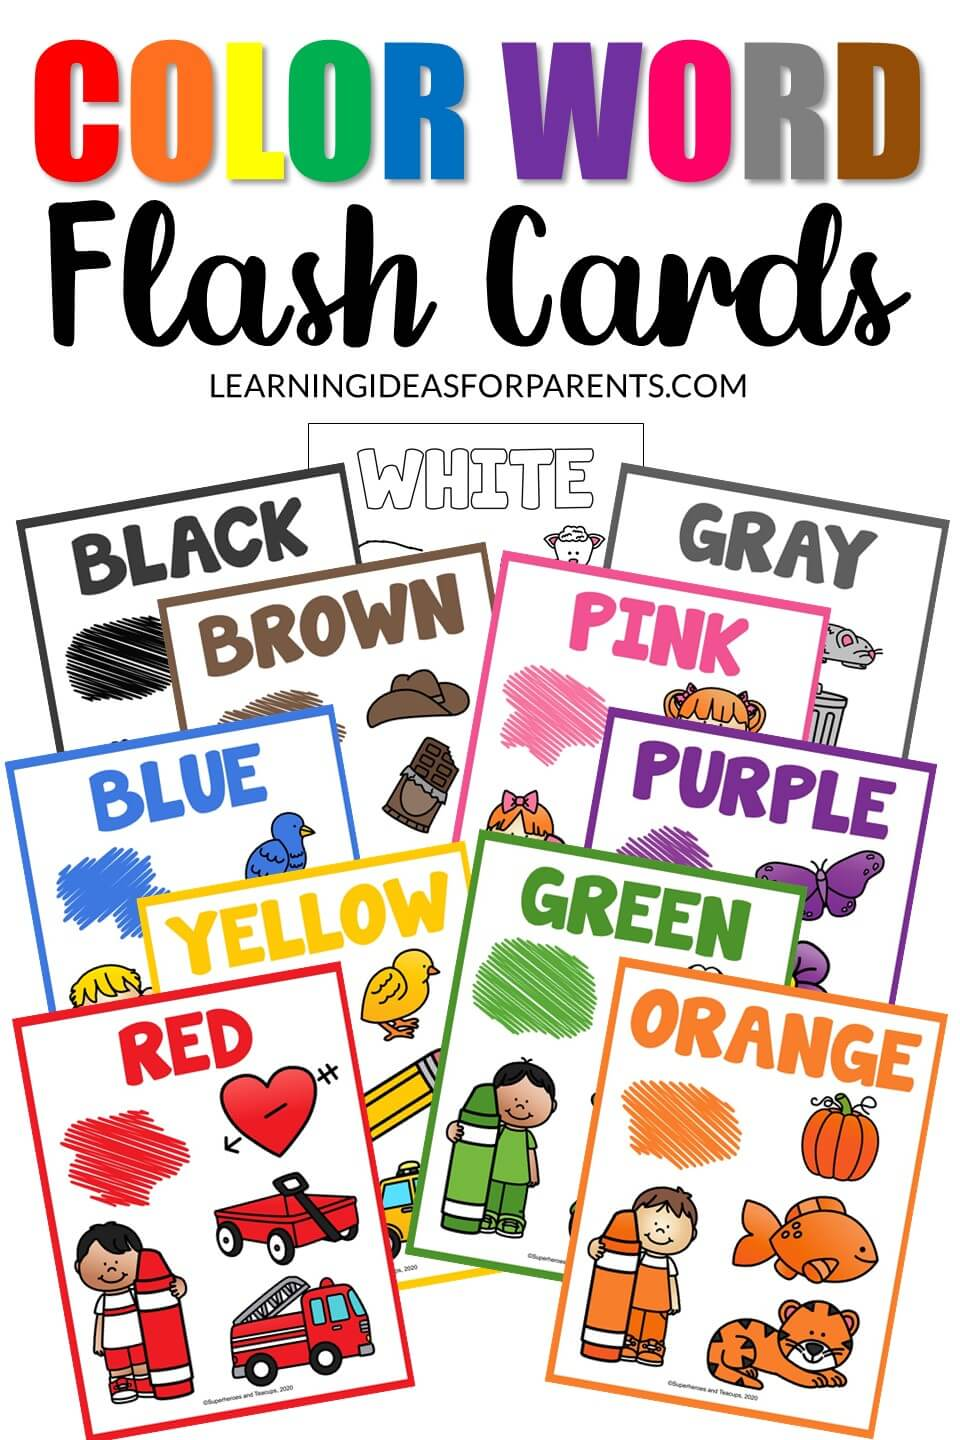 Free printable color word flash cards